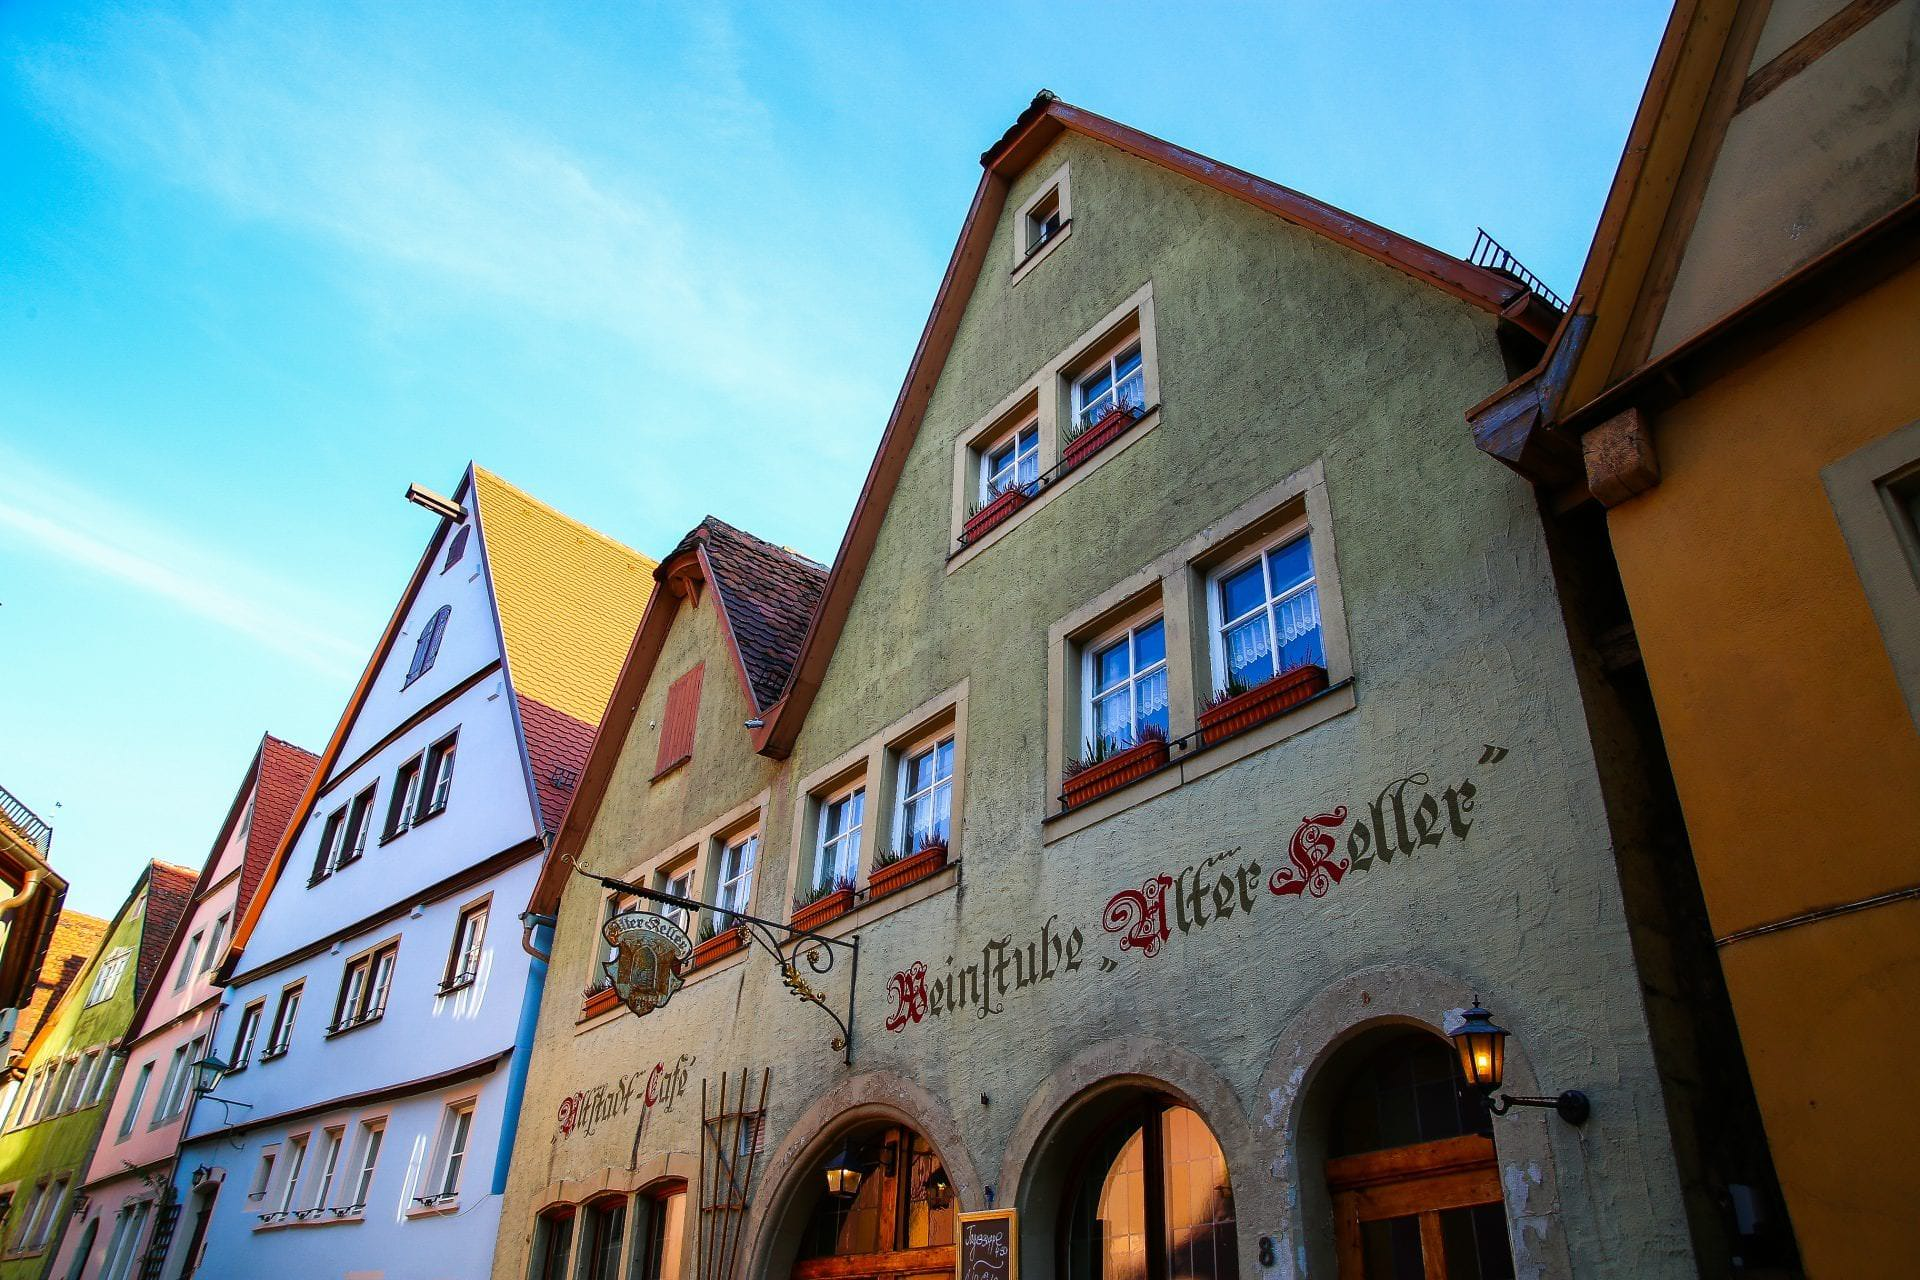 28.-30.12.2018 Rothenburg ob der Tauber